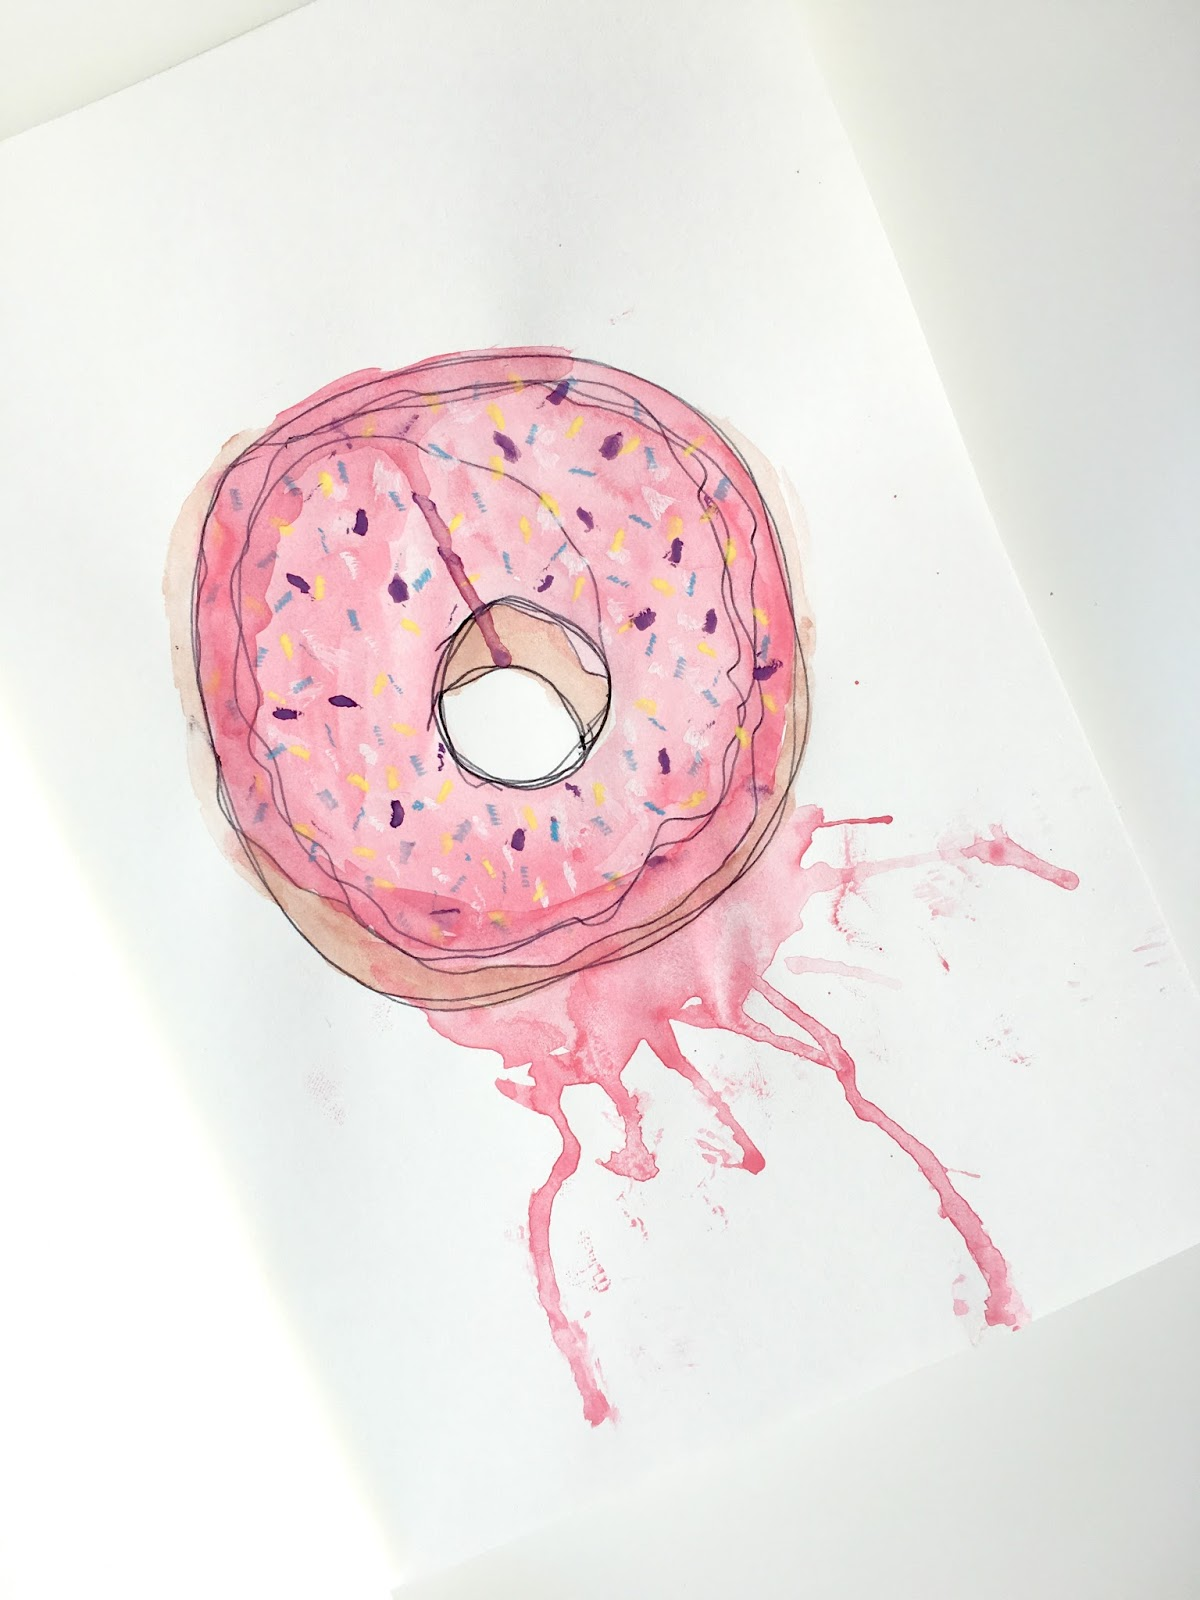 Sweet Allure I Decided To Start An Art Journal creative sketchs drawing watercolours painting doodles dougnut donut sprinkles fun hobby